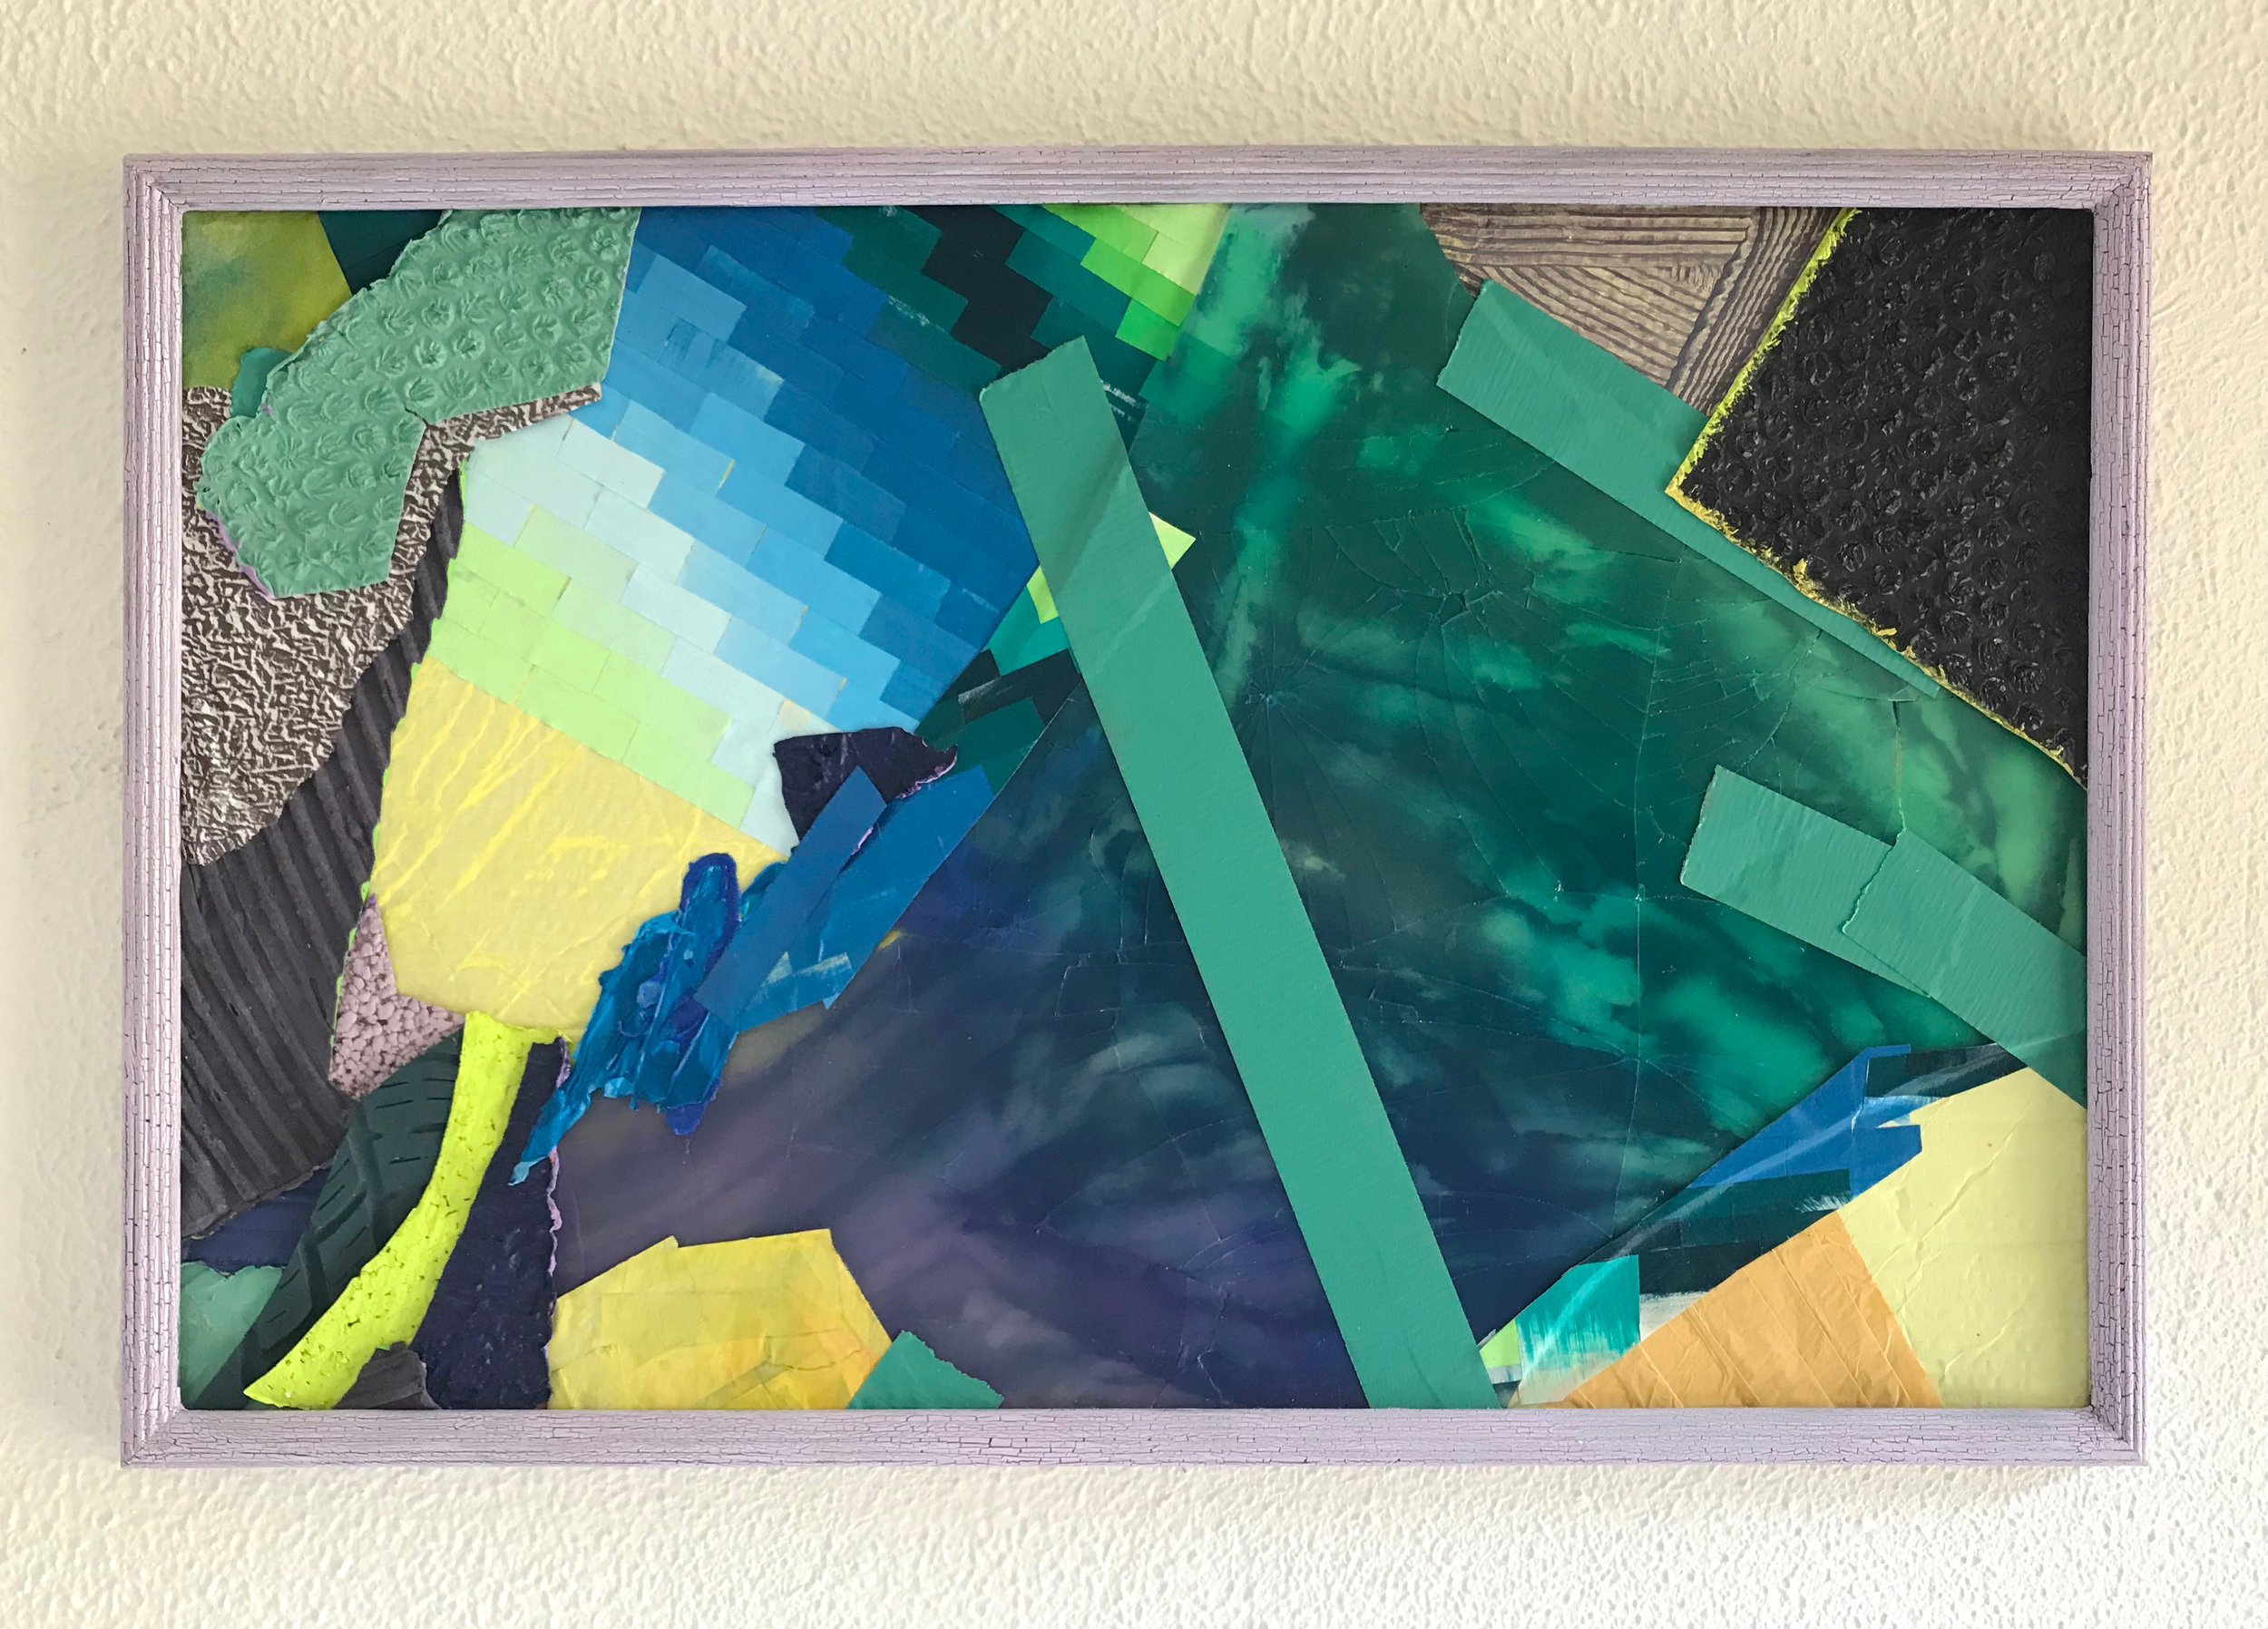 Dissociation 46: Rio, 2019.  Acrylic, cardboard, found paper, glass, enamel, duct tape  30 x 17 inches.